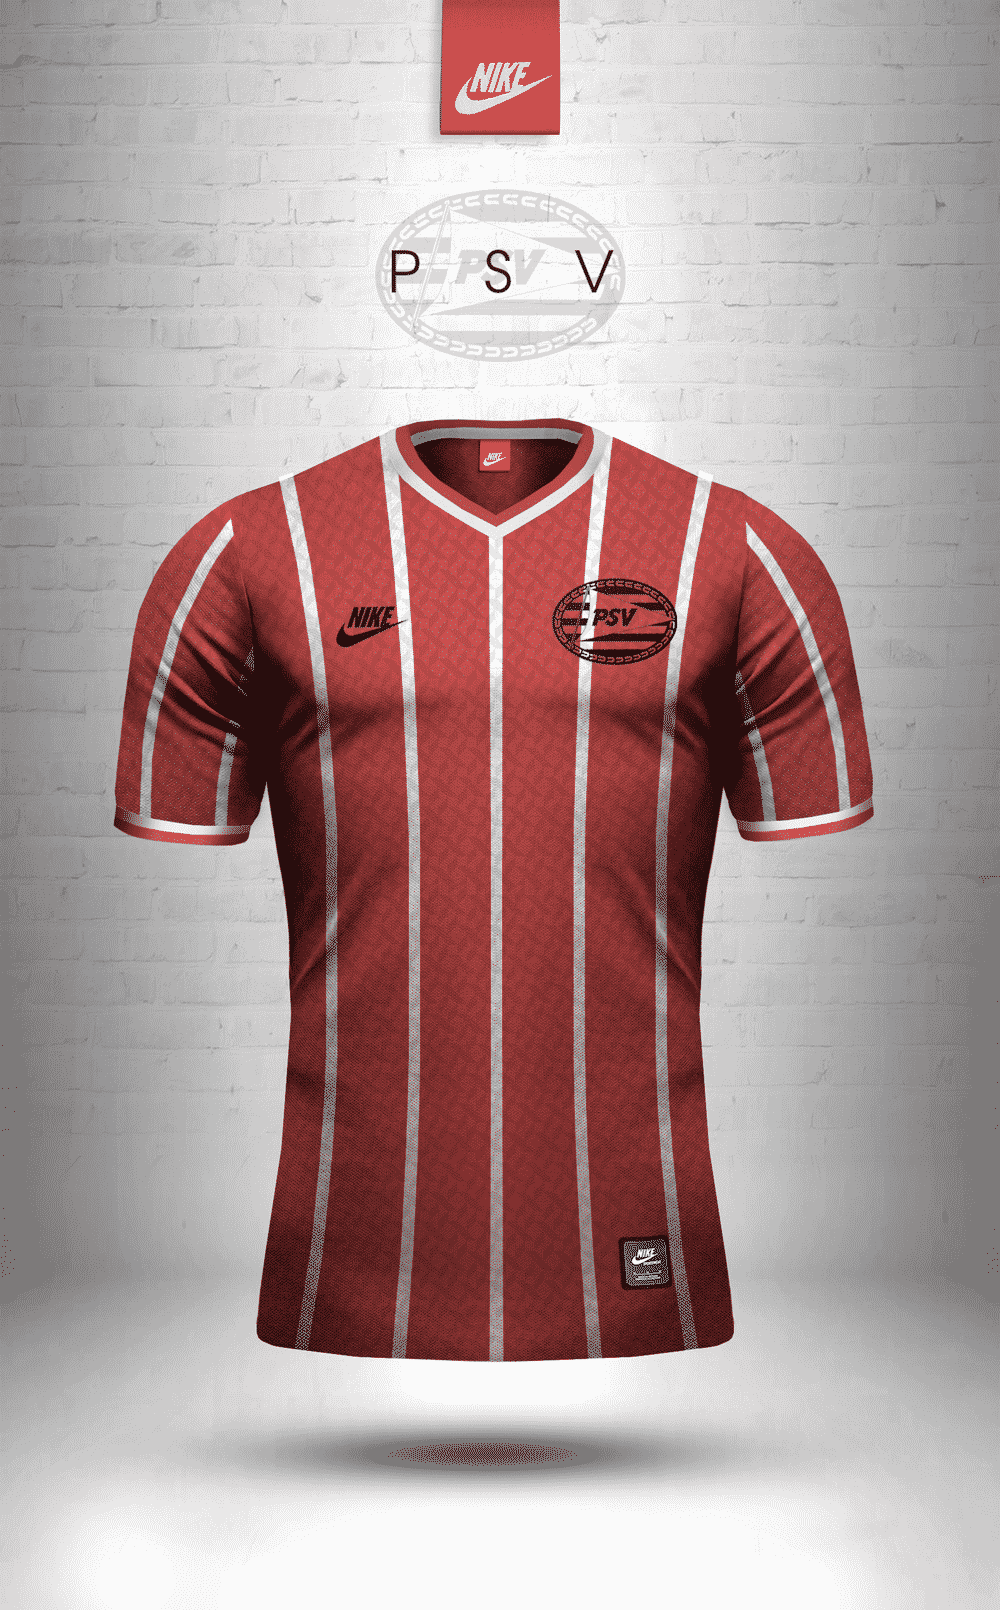 maillot-psv-eindhoven-nike-sportswear